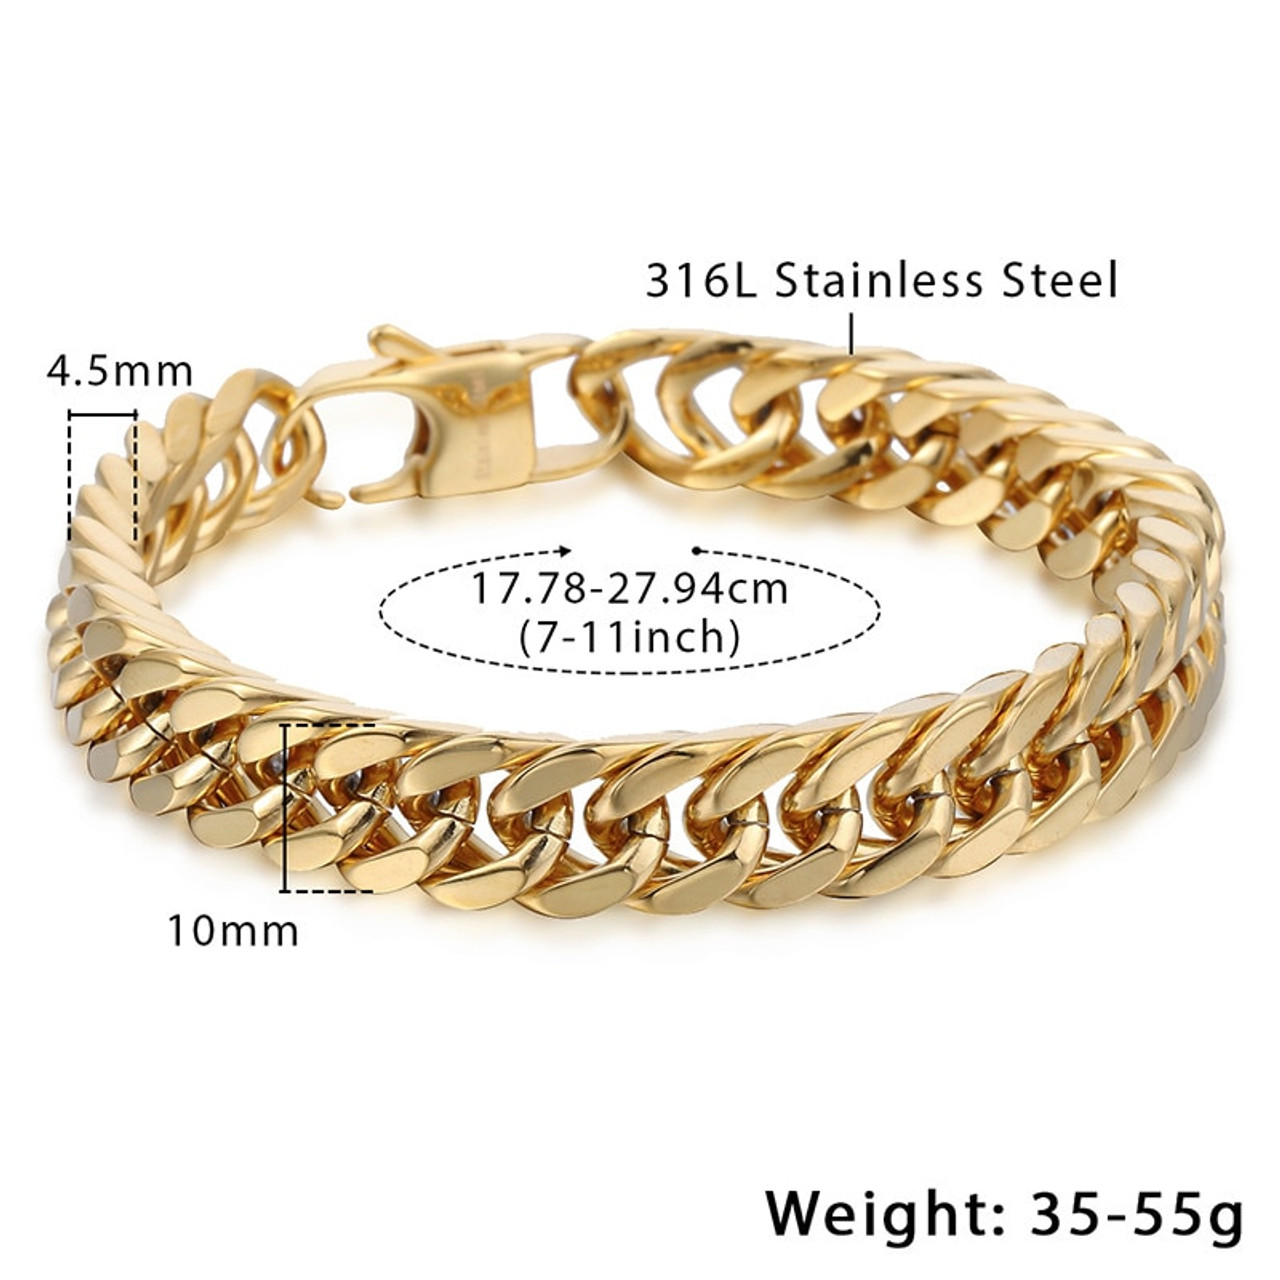 Men's Bracelets Gold Black Double Curb Chain 316L Stainless Steel Bracelet  For Male Jewelry Dropshipping Wholesale 10mm KHB413